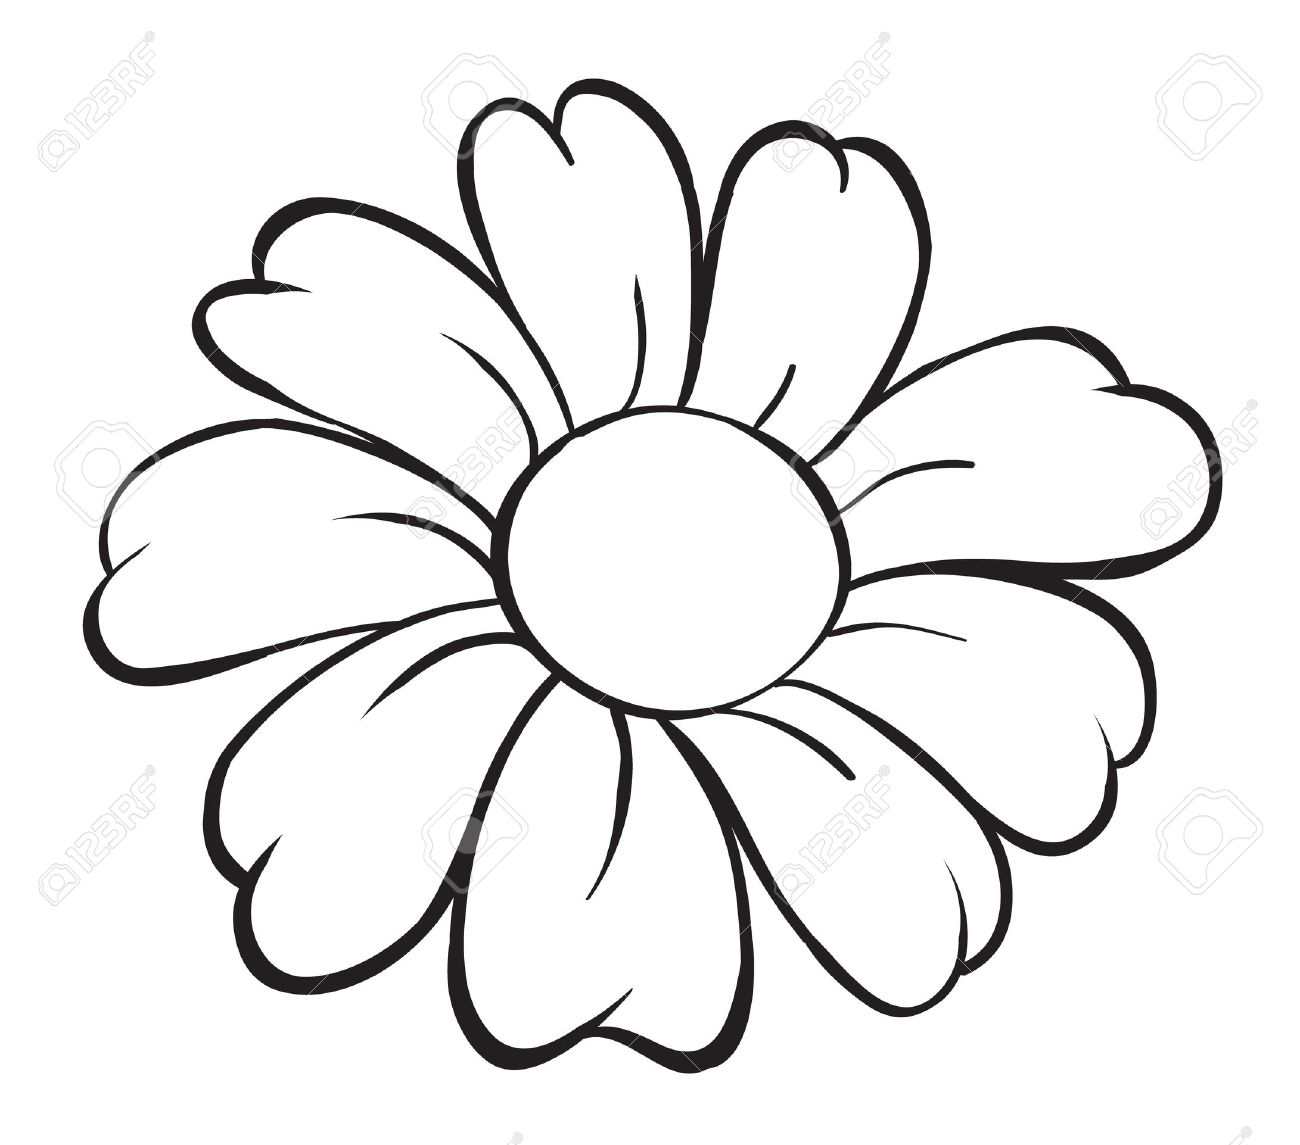 Flower drawing black and white at getdrawings free for 1300x1145 photos cartoon flowers black and white mightylinksfo